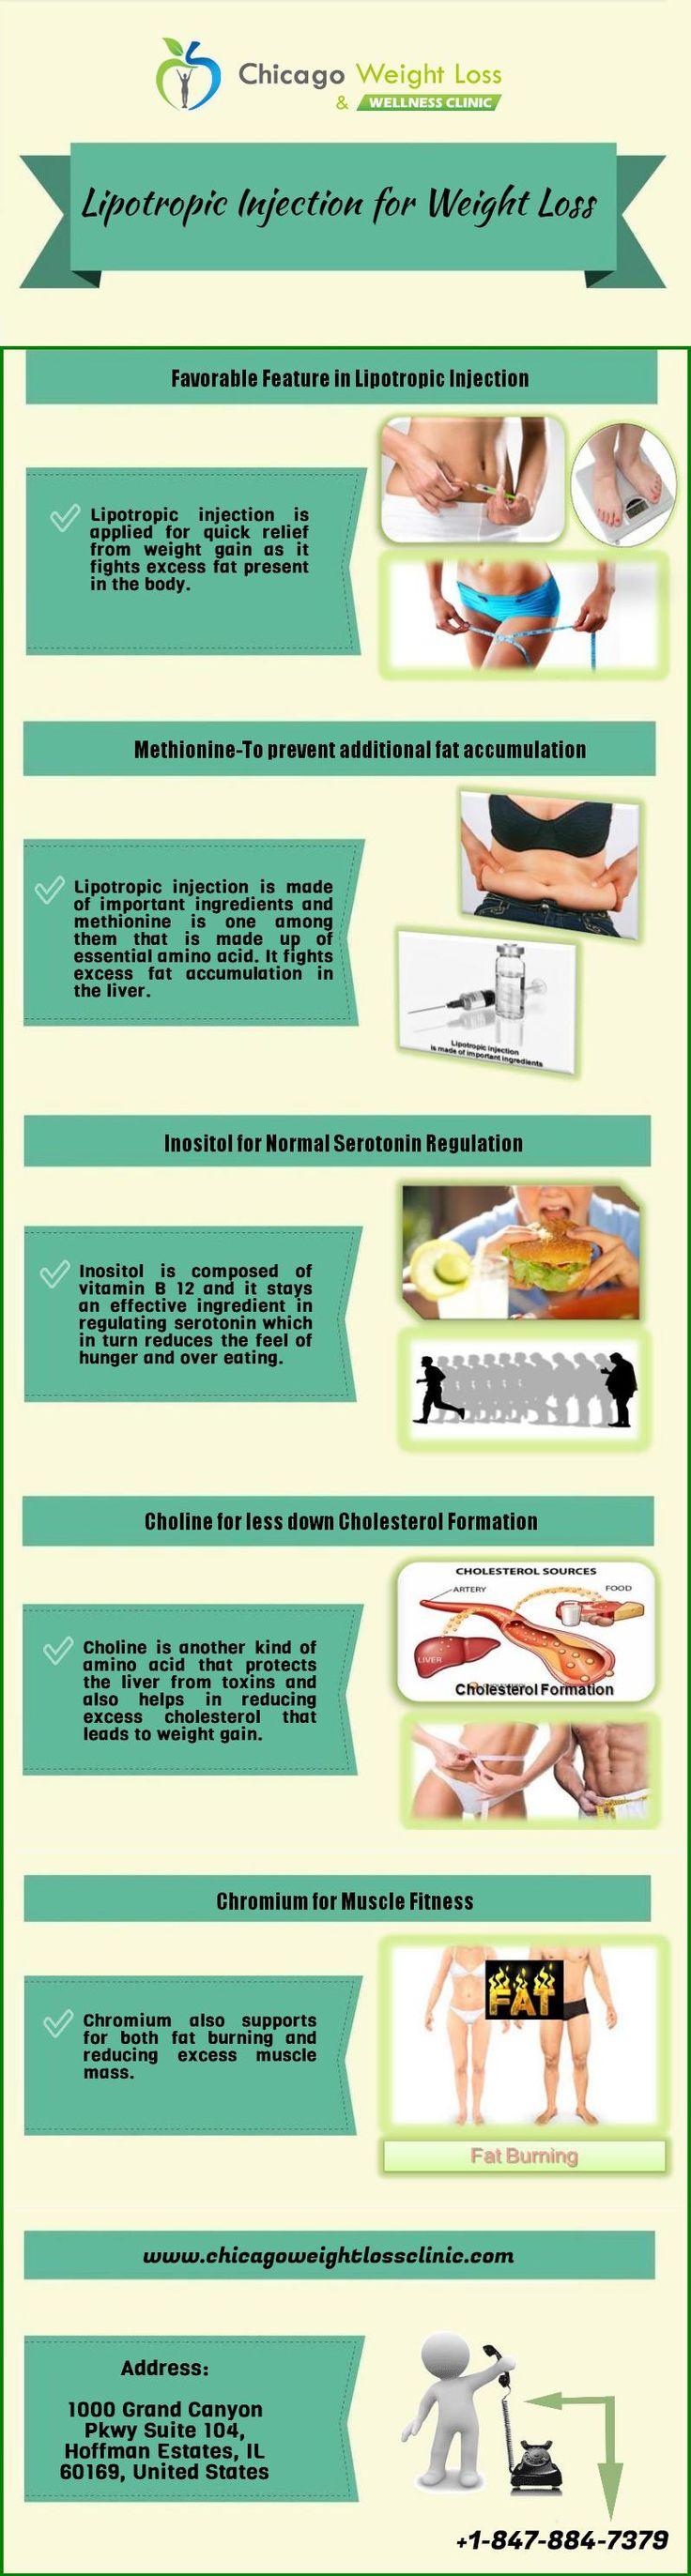 This #infograph explores the information on lipotropic injection that fights #weightgain. Also find the various types of like favorable feature in lipotropic injection, methionine-to prevent additional fat accumulation, inositol for normal serotonin regulation, choline for less down cholesterol formation. Lipotropic injection is made of important ingredients and methionine is one among them that is made up of essential amino acid. visit at http://www.chicagoweightlossclinic.com/about-us.html